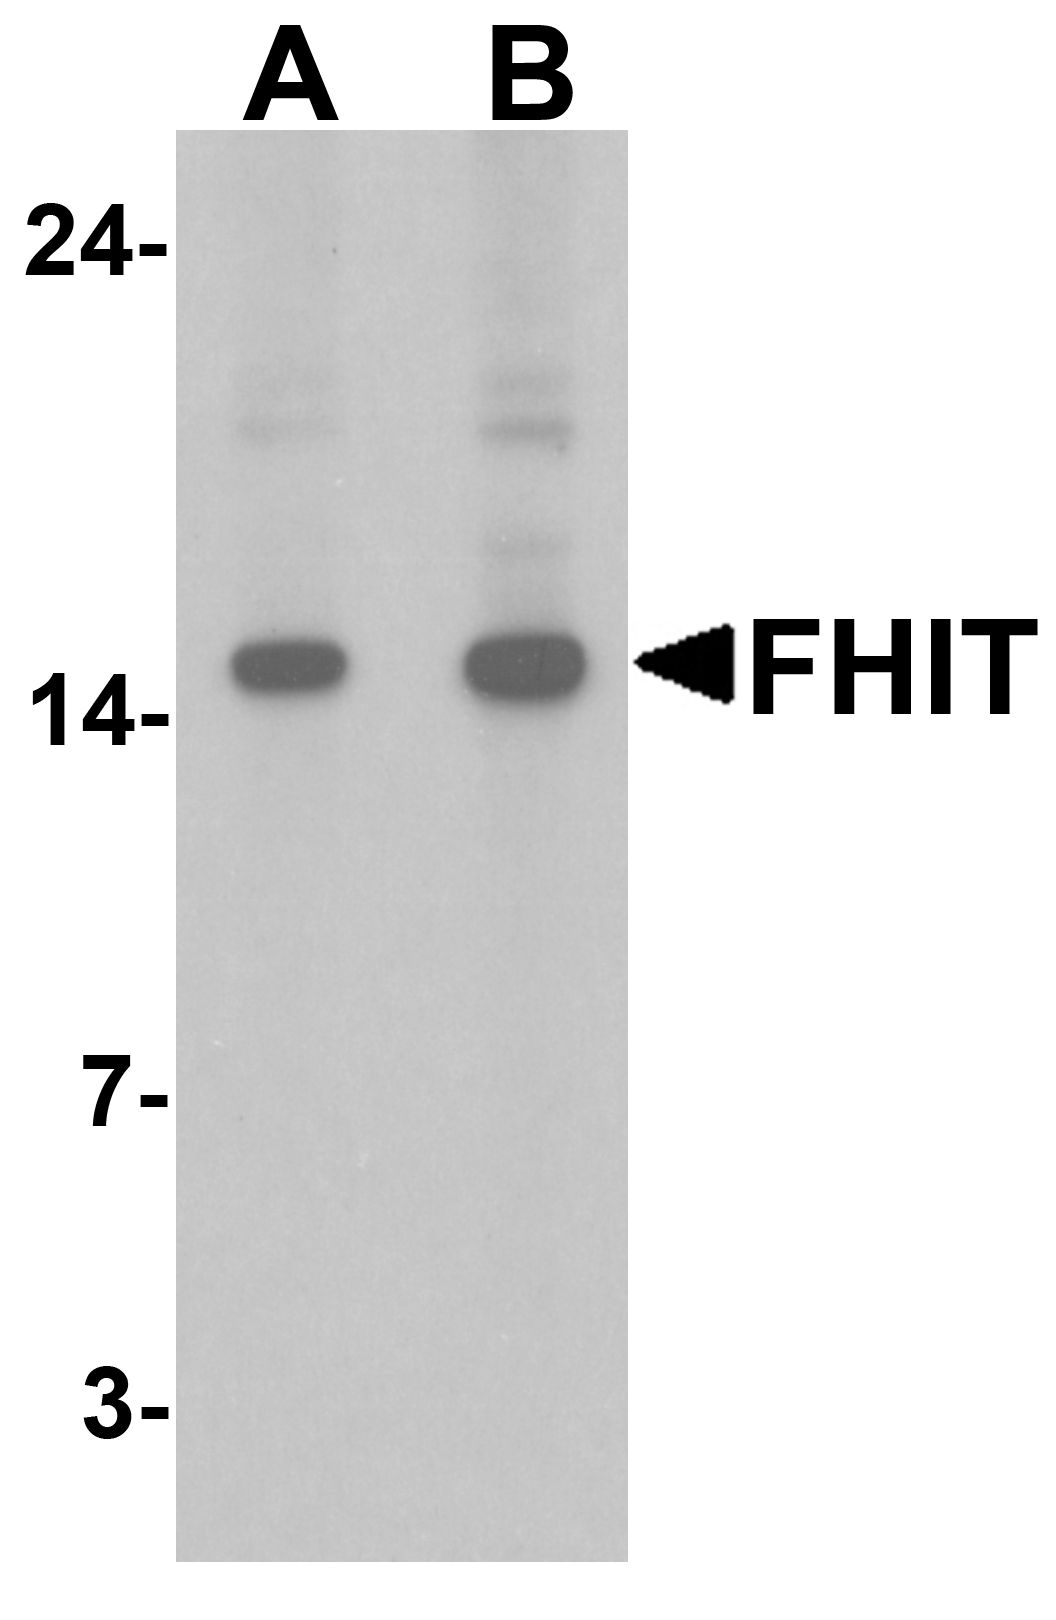 Western blot analysis of FHIT in HeLa cell lysate with FHIT antibody at (A) 1 and (B) 2 ug/ml.